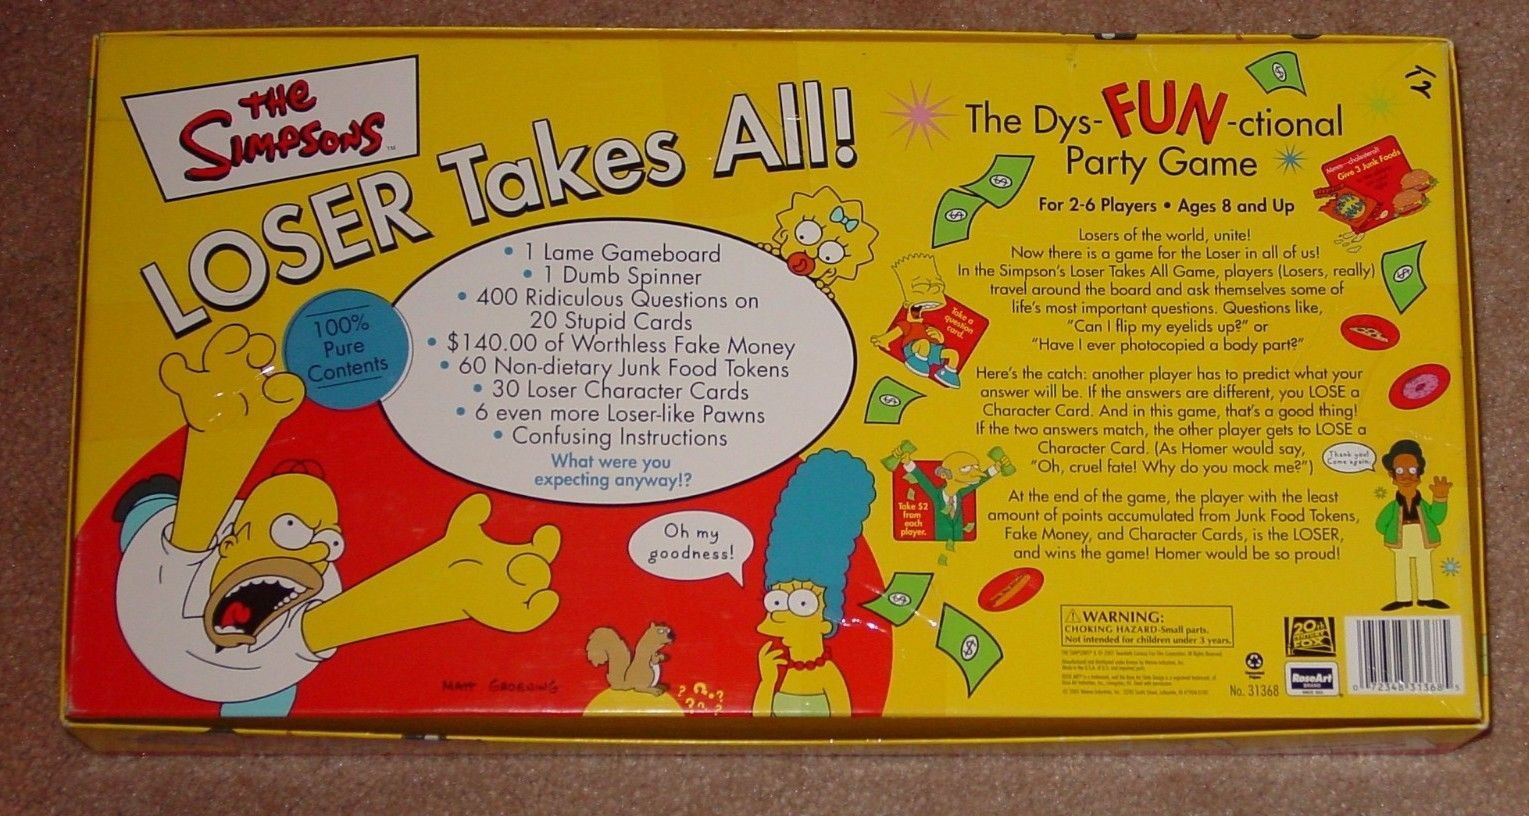 SIMPSONS LOSER TAKES ALL DYSFUNCTIONAL PARTY GAME 2001 ROSEART COMPLETE image 5